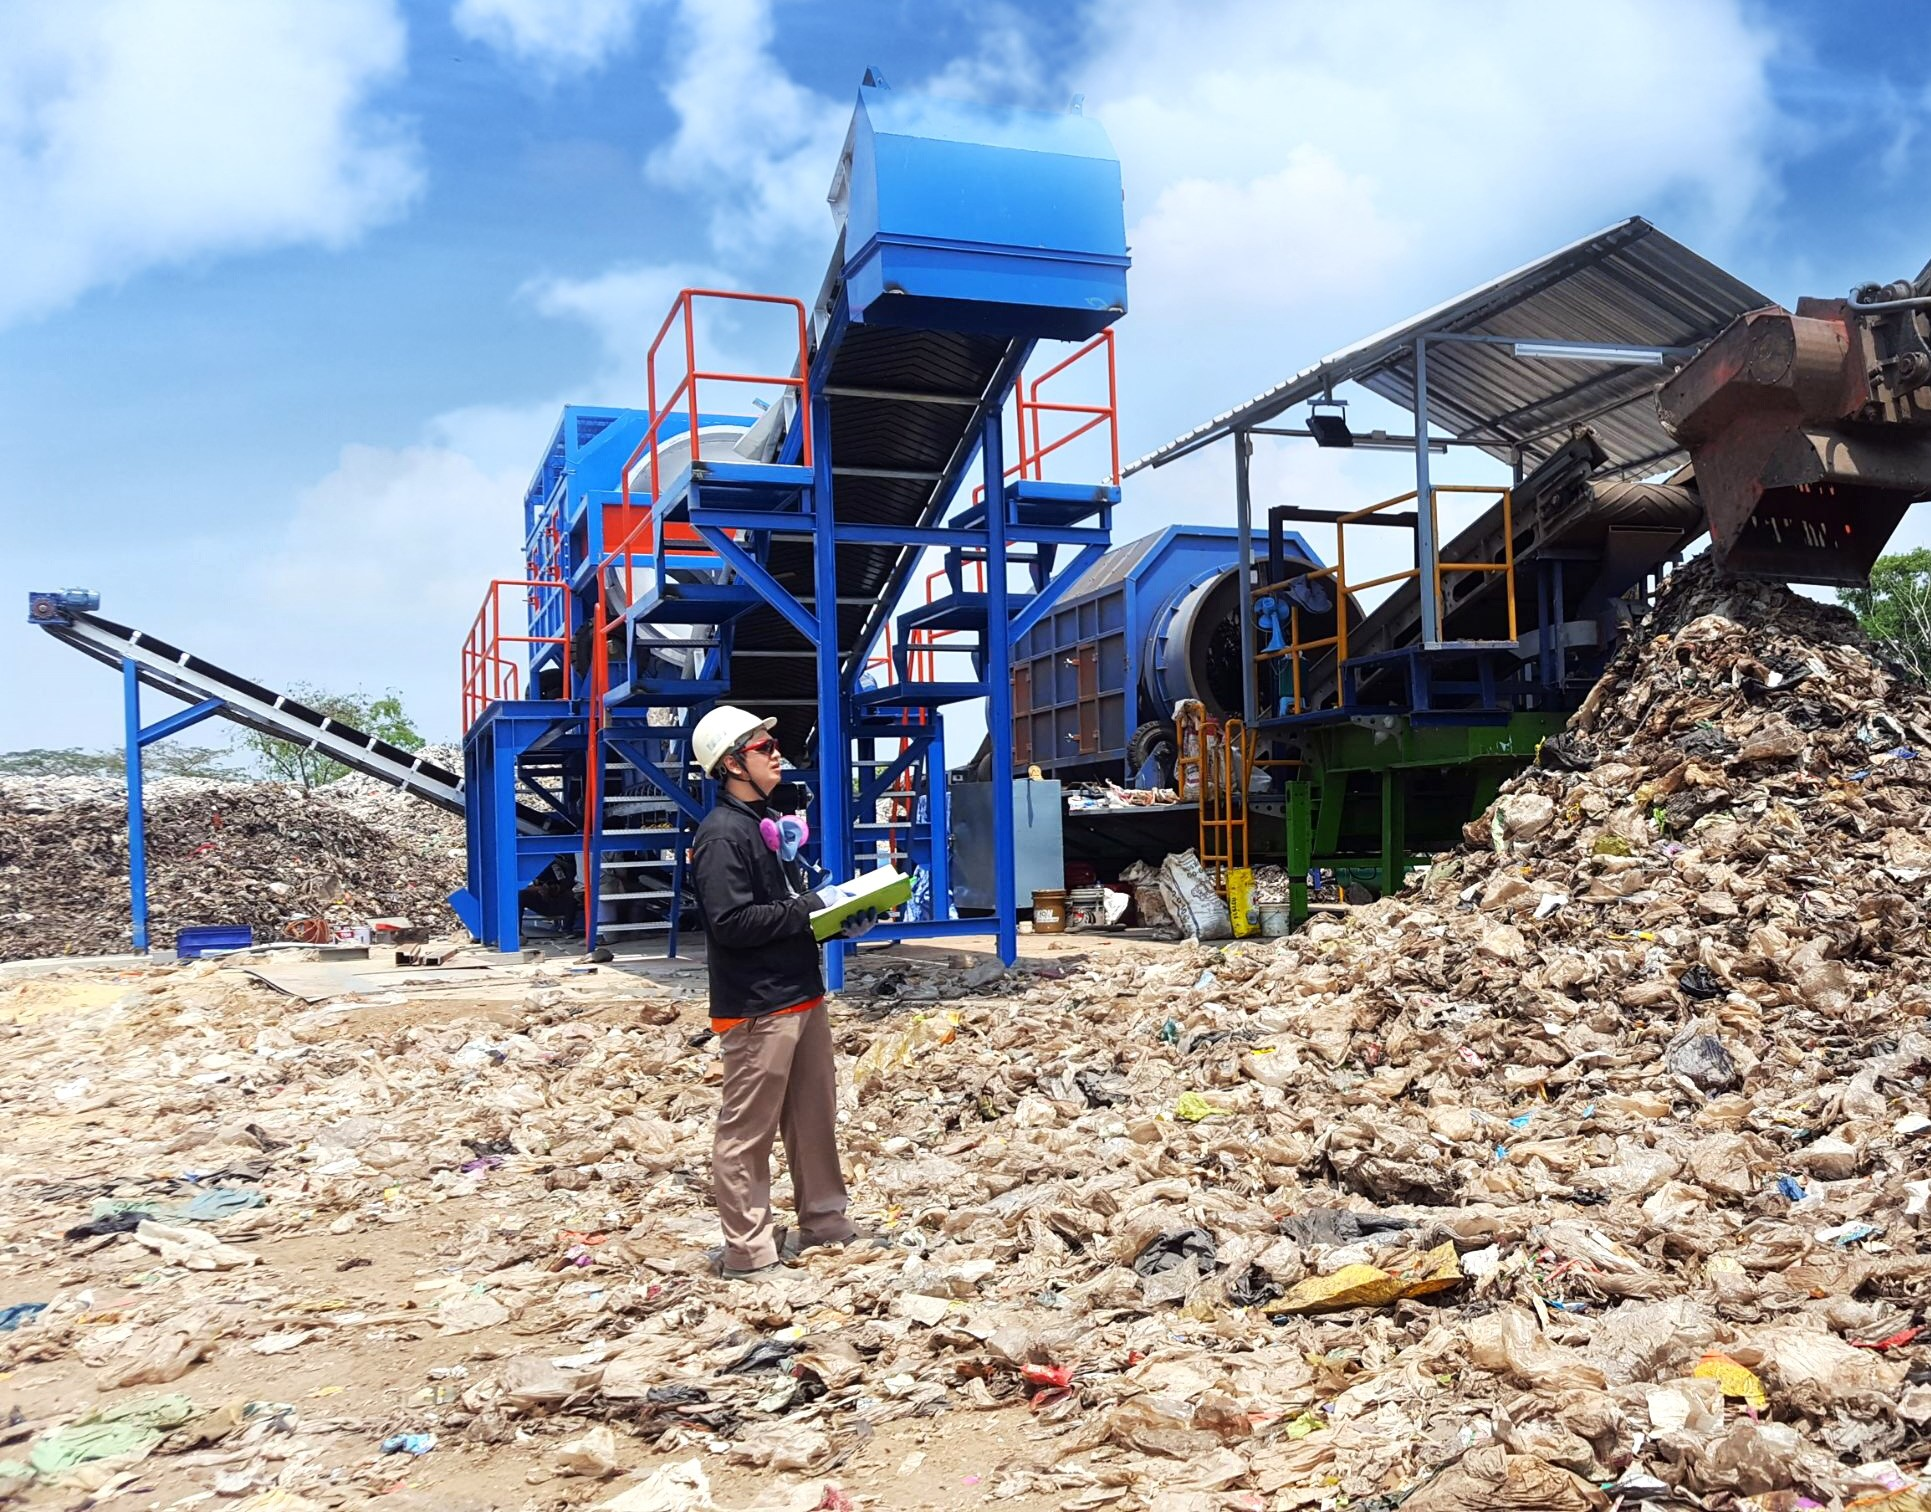 INSEE Ecocyle mines landfills in Thailand for plastics that can be used as refuse-derived fuel